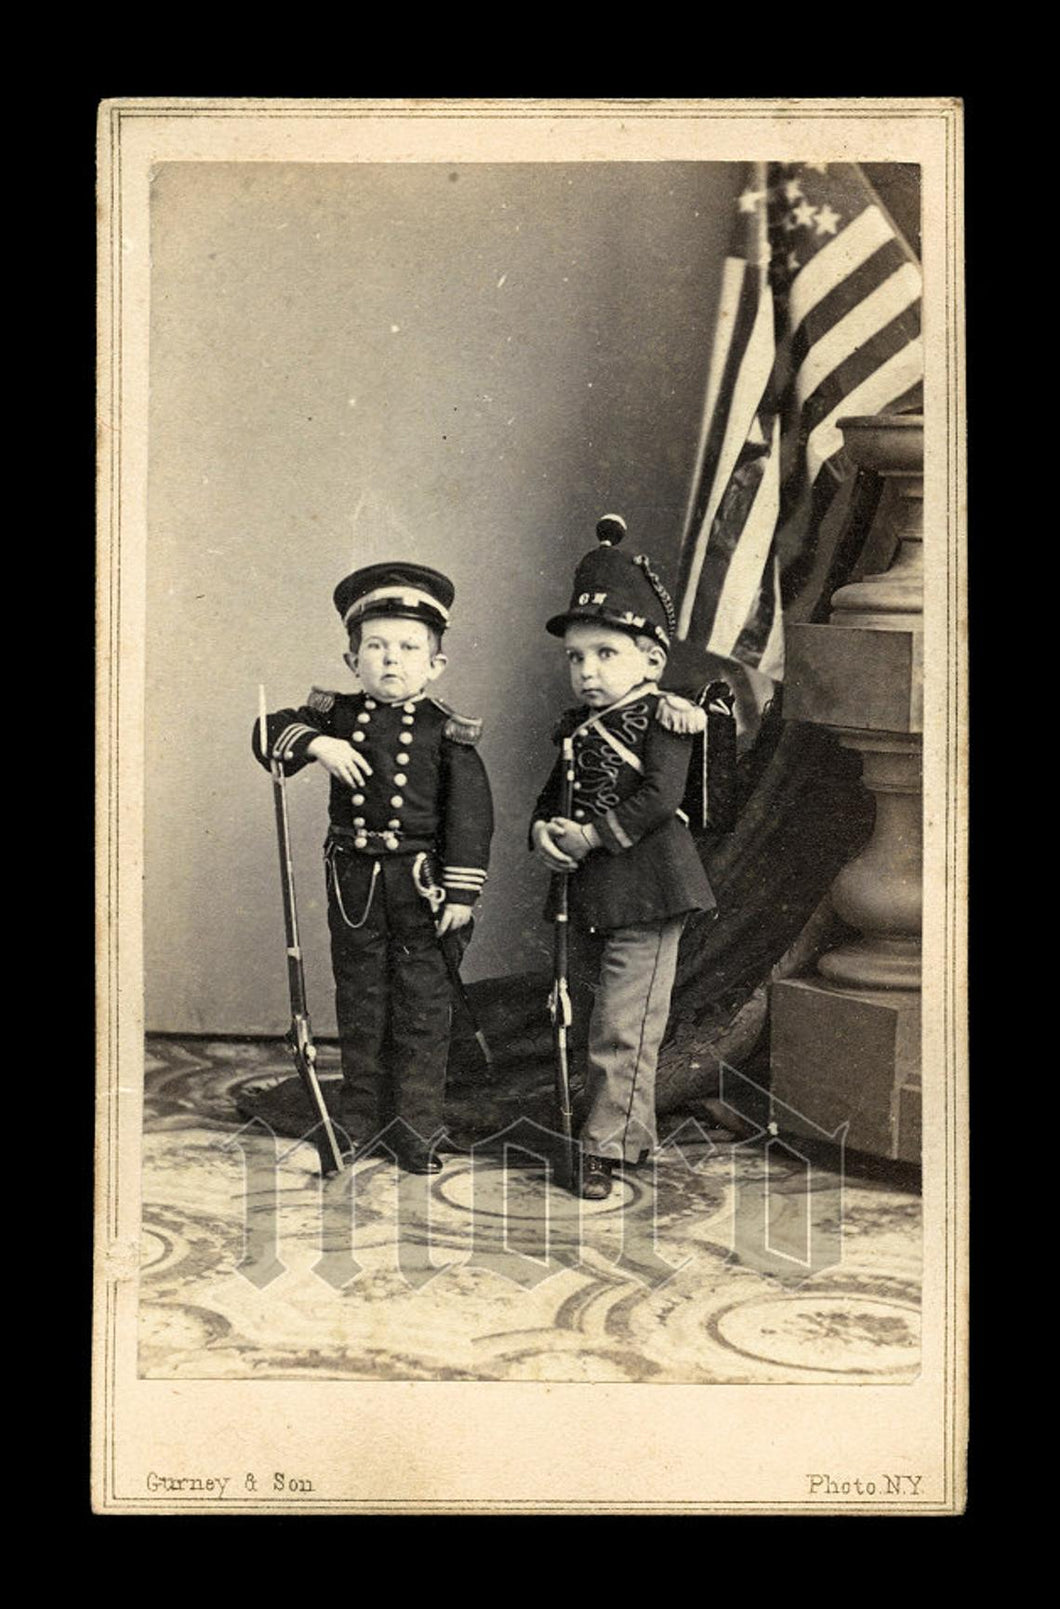 RARE 1860s CDV Commodore Foote Major Tot Sideshow Midgets Civil War Soldiers